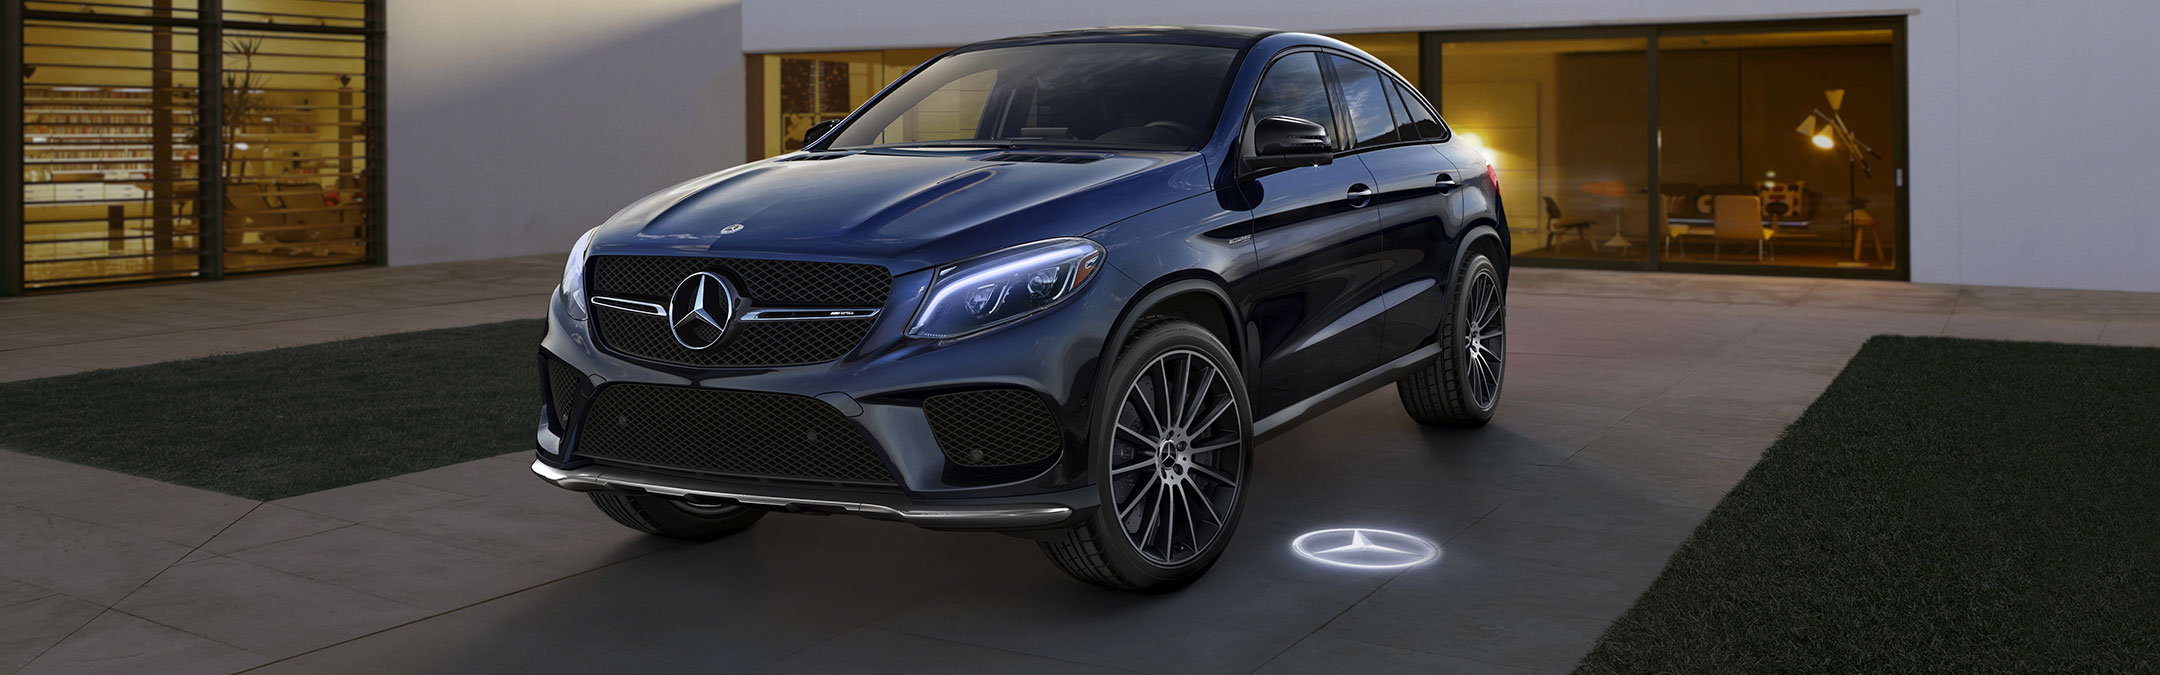 Mercedes-AMG GLE Coupe Innovation